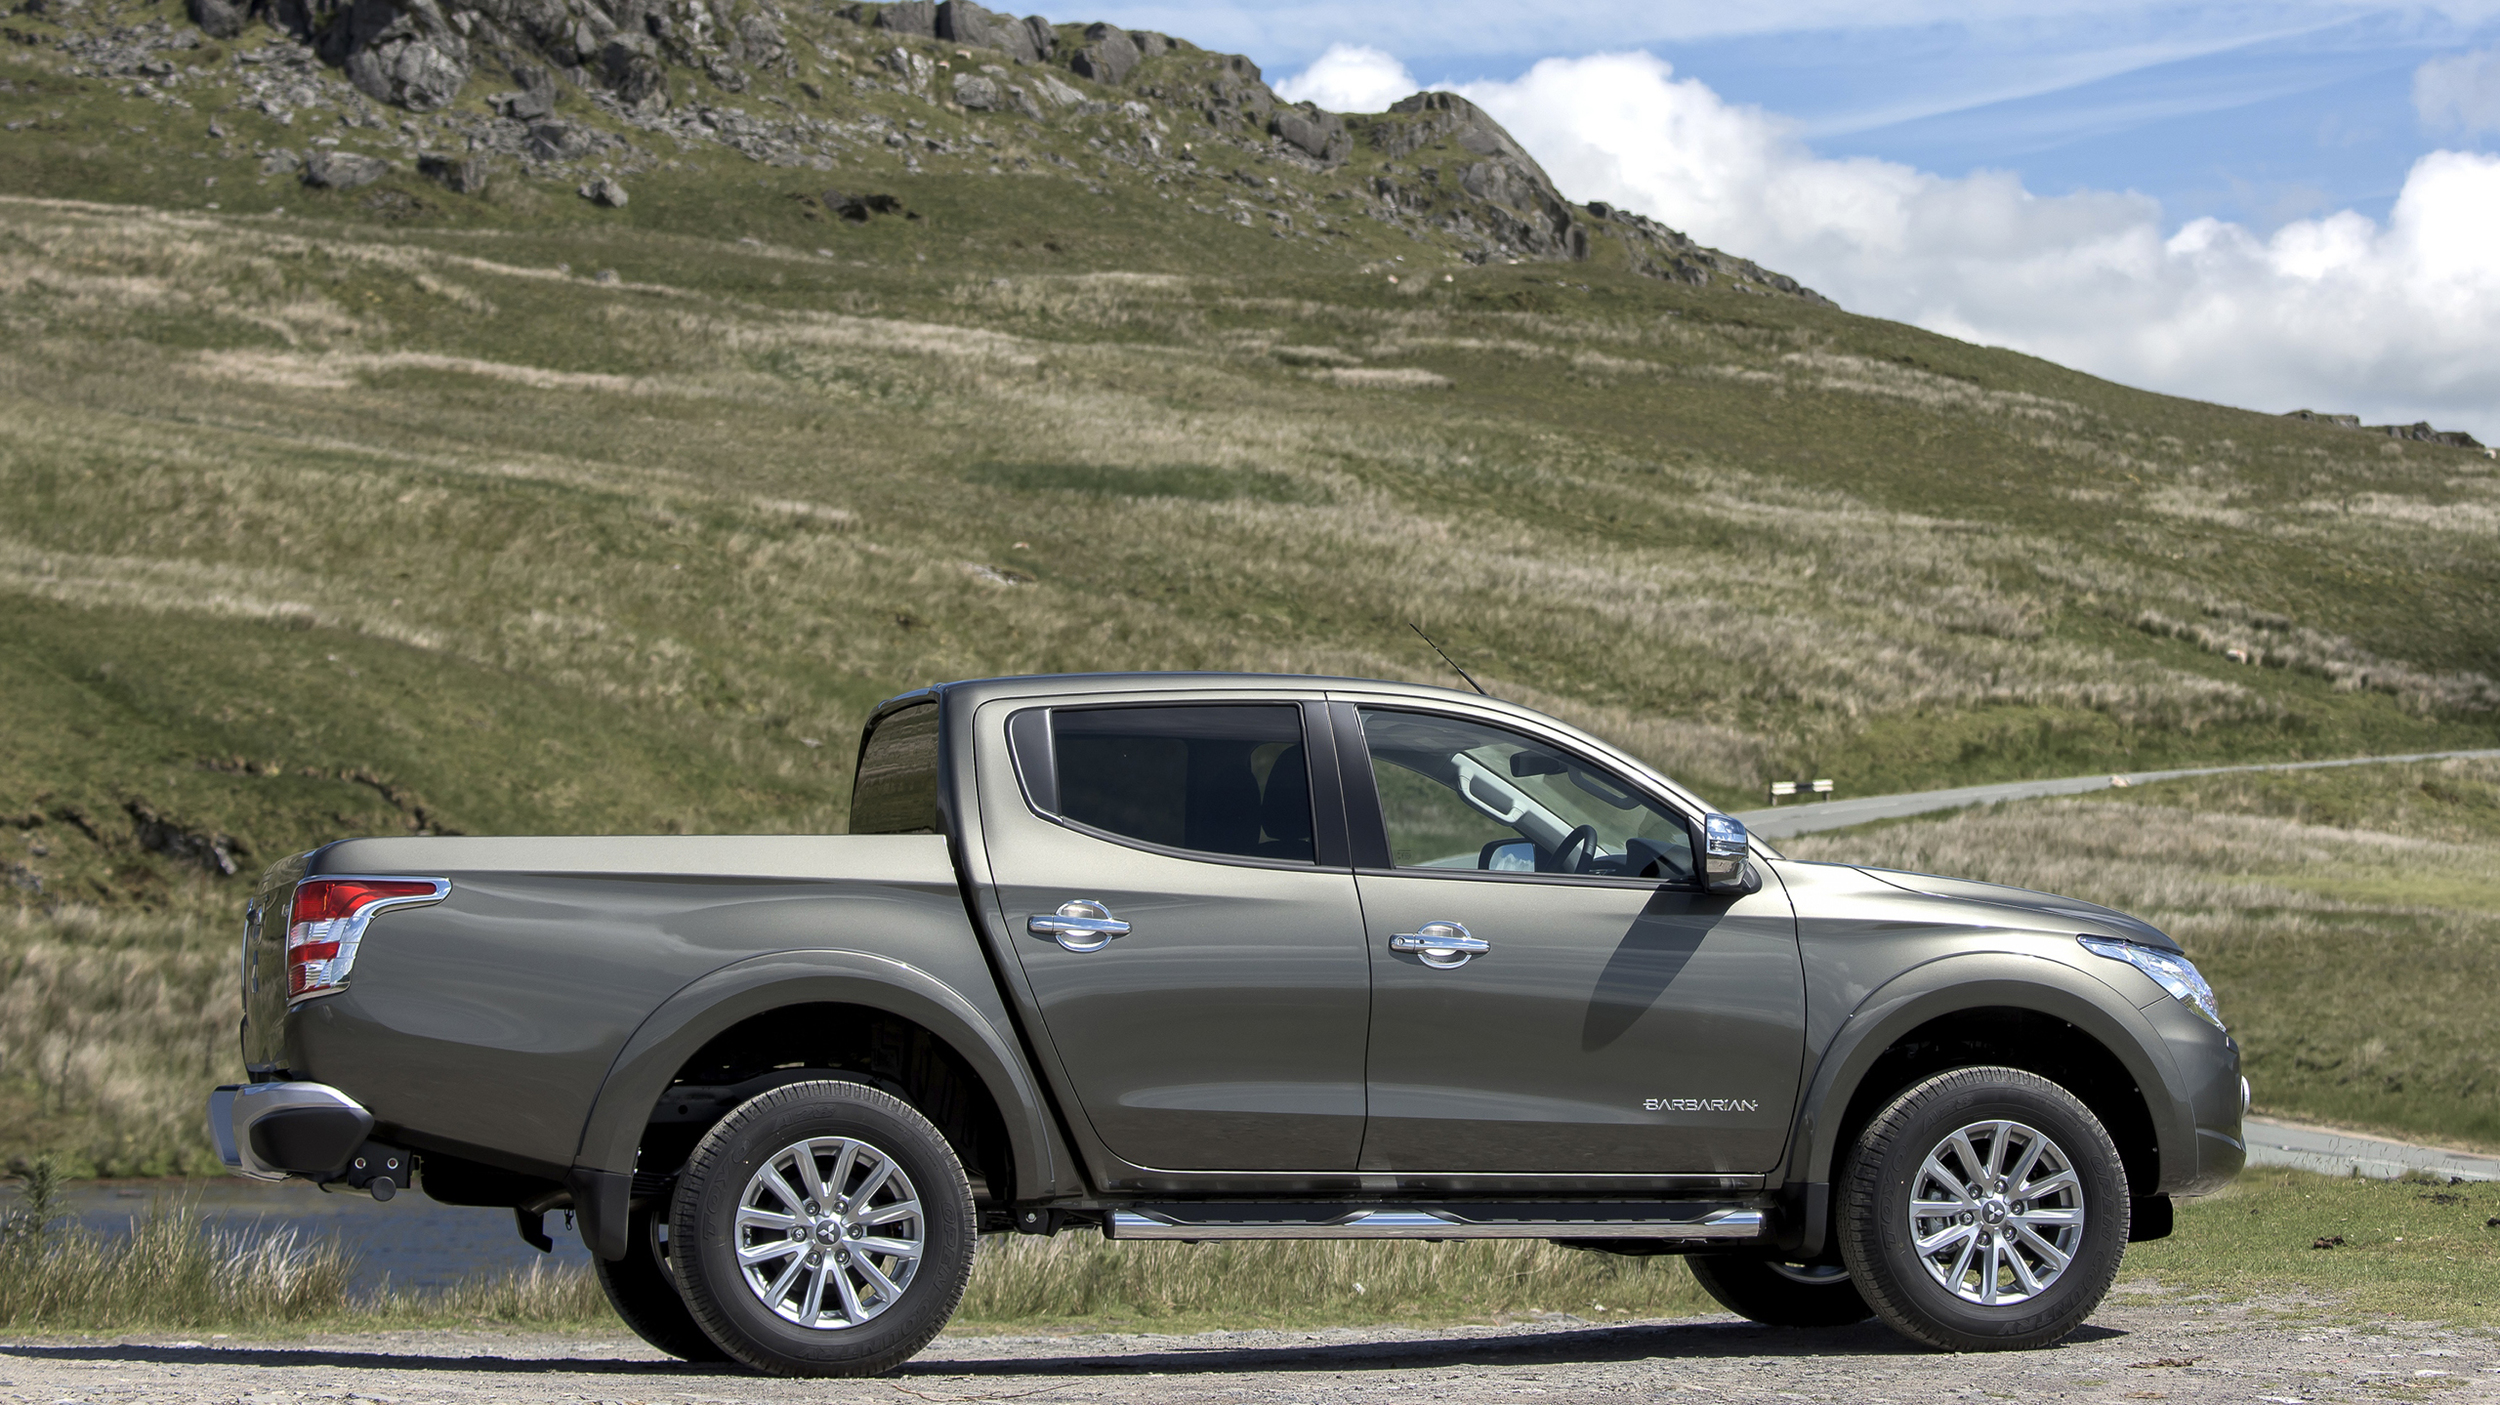 New Mitsubishi L200 Series 5 pick-up